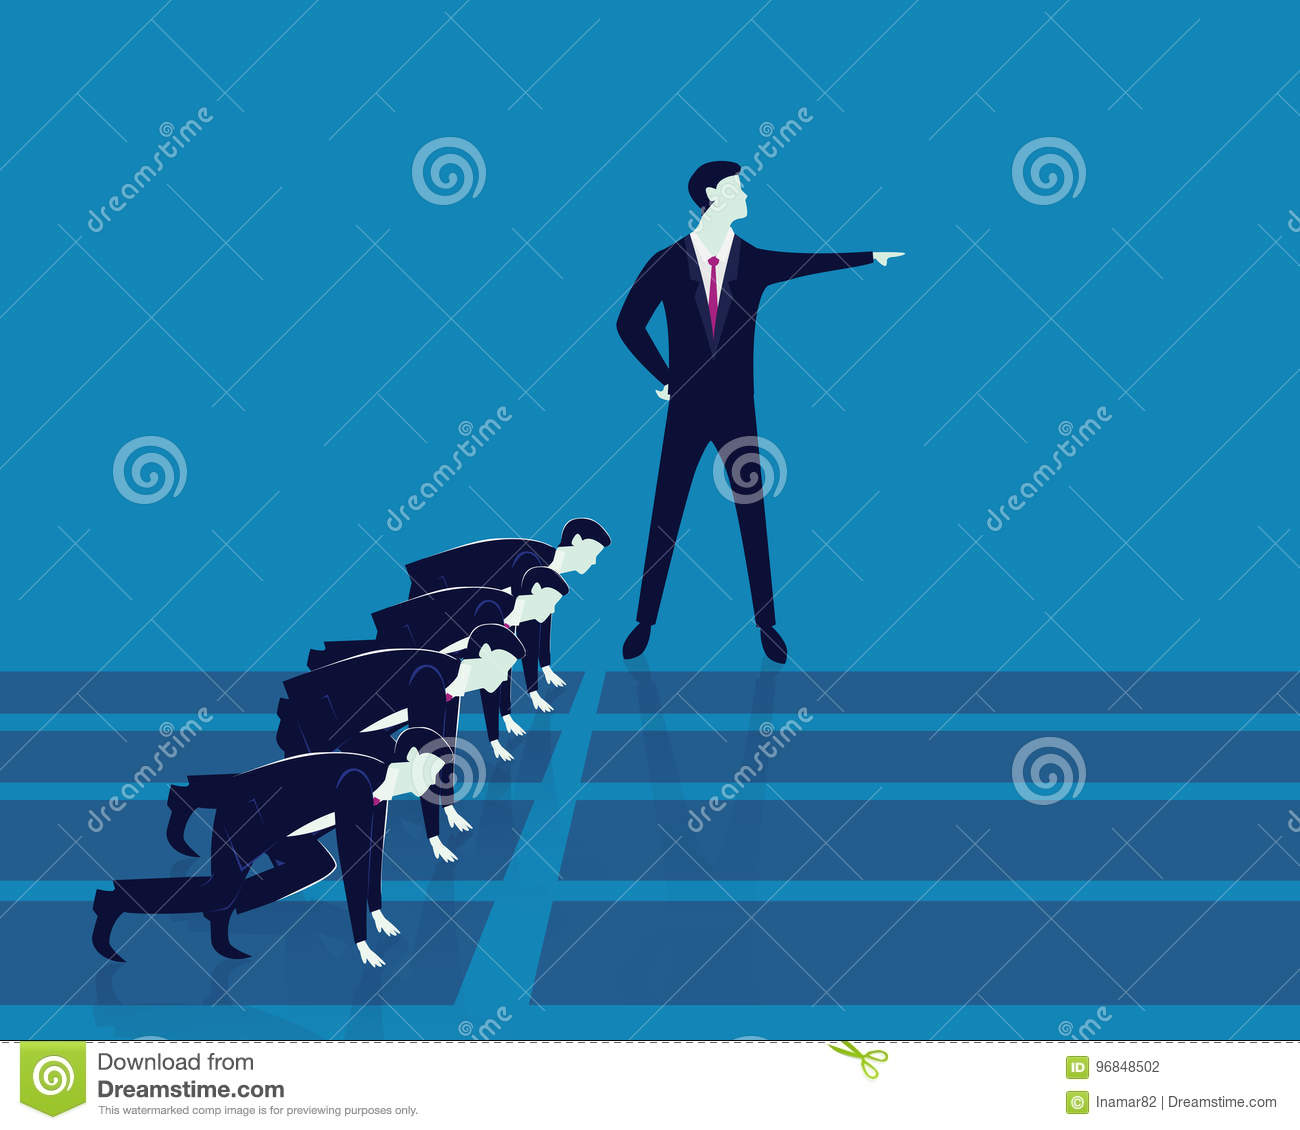 Leadership And Business Competition Concept Stock Vector